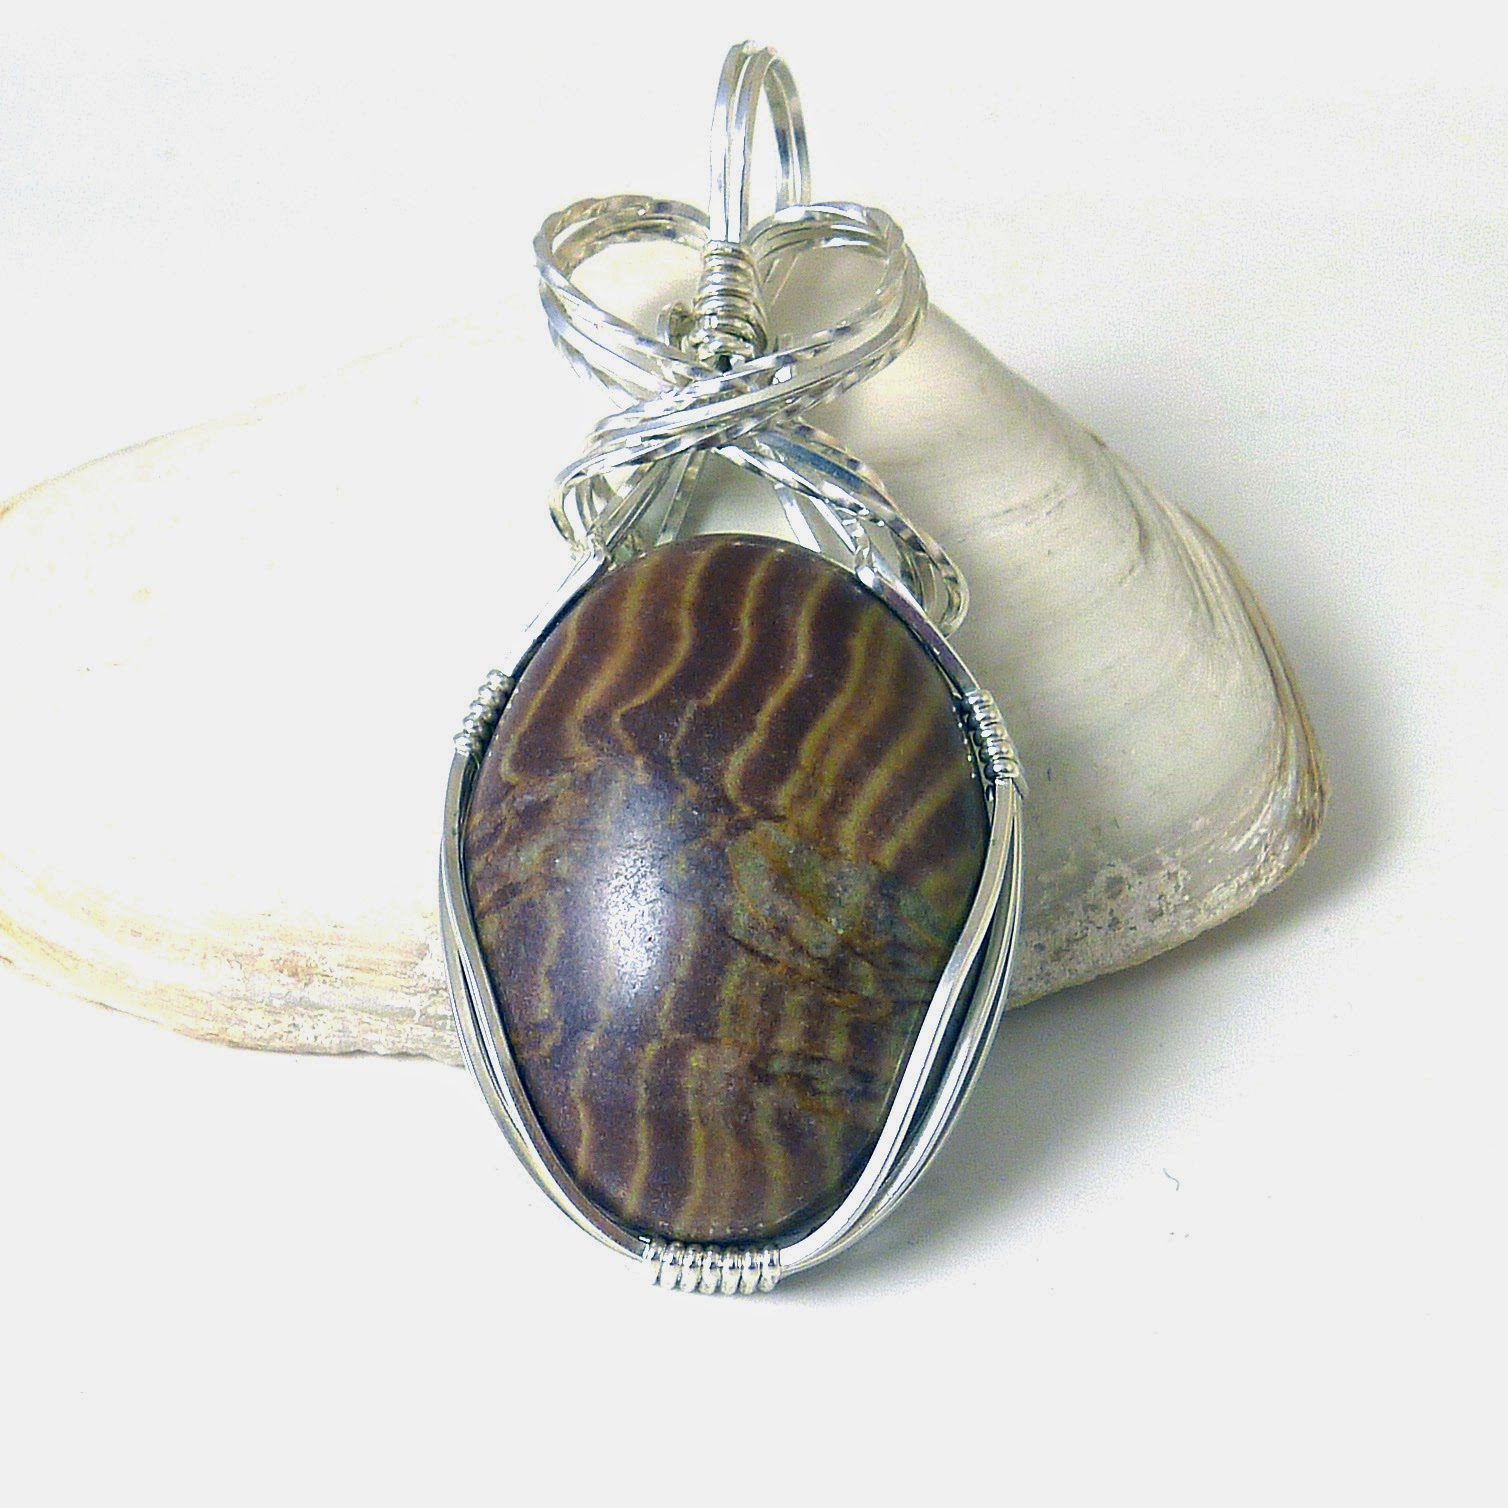 http://www.shazzabethcreations.co.nz/#!product/prd1/2574335161/brown-zebra-jasper-and-sterling-silver-pendant